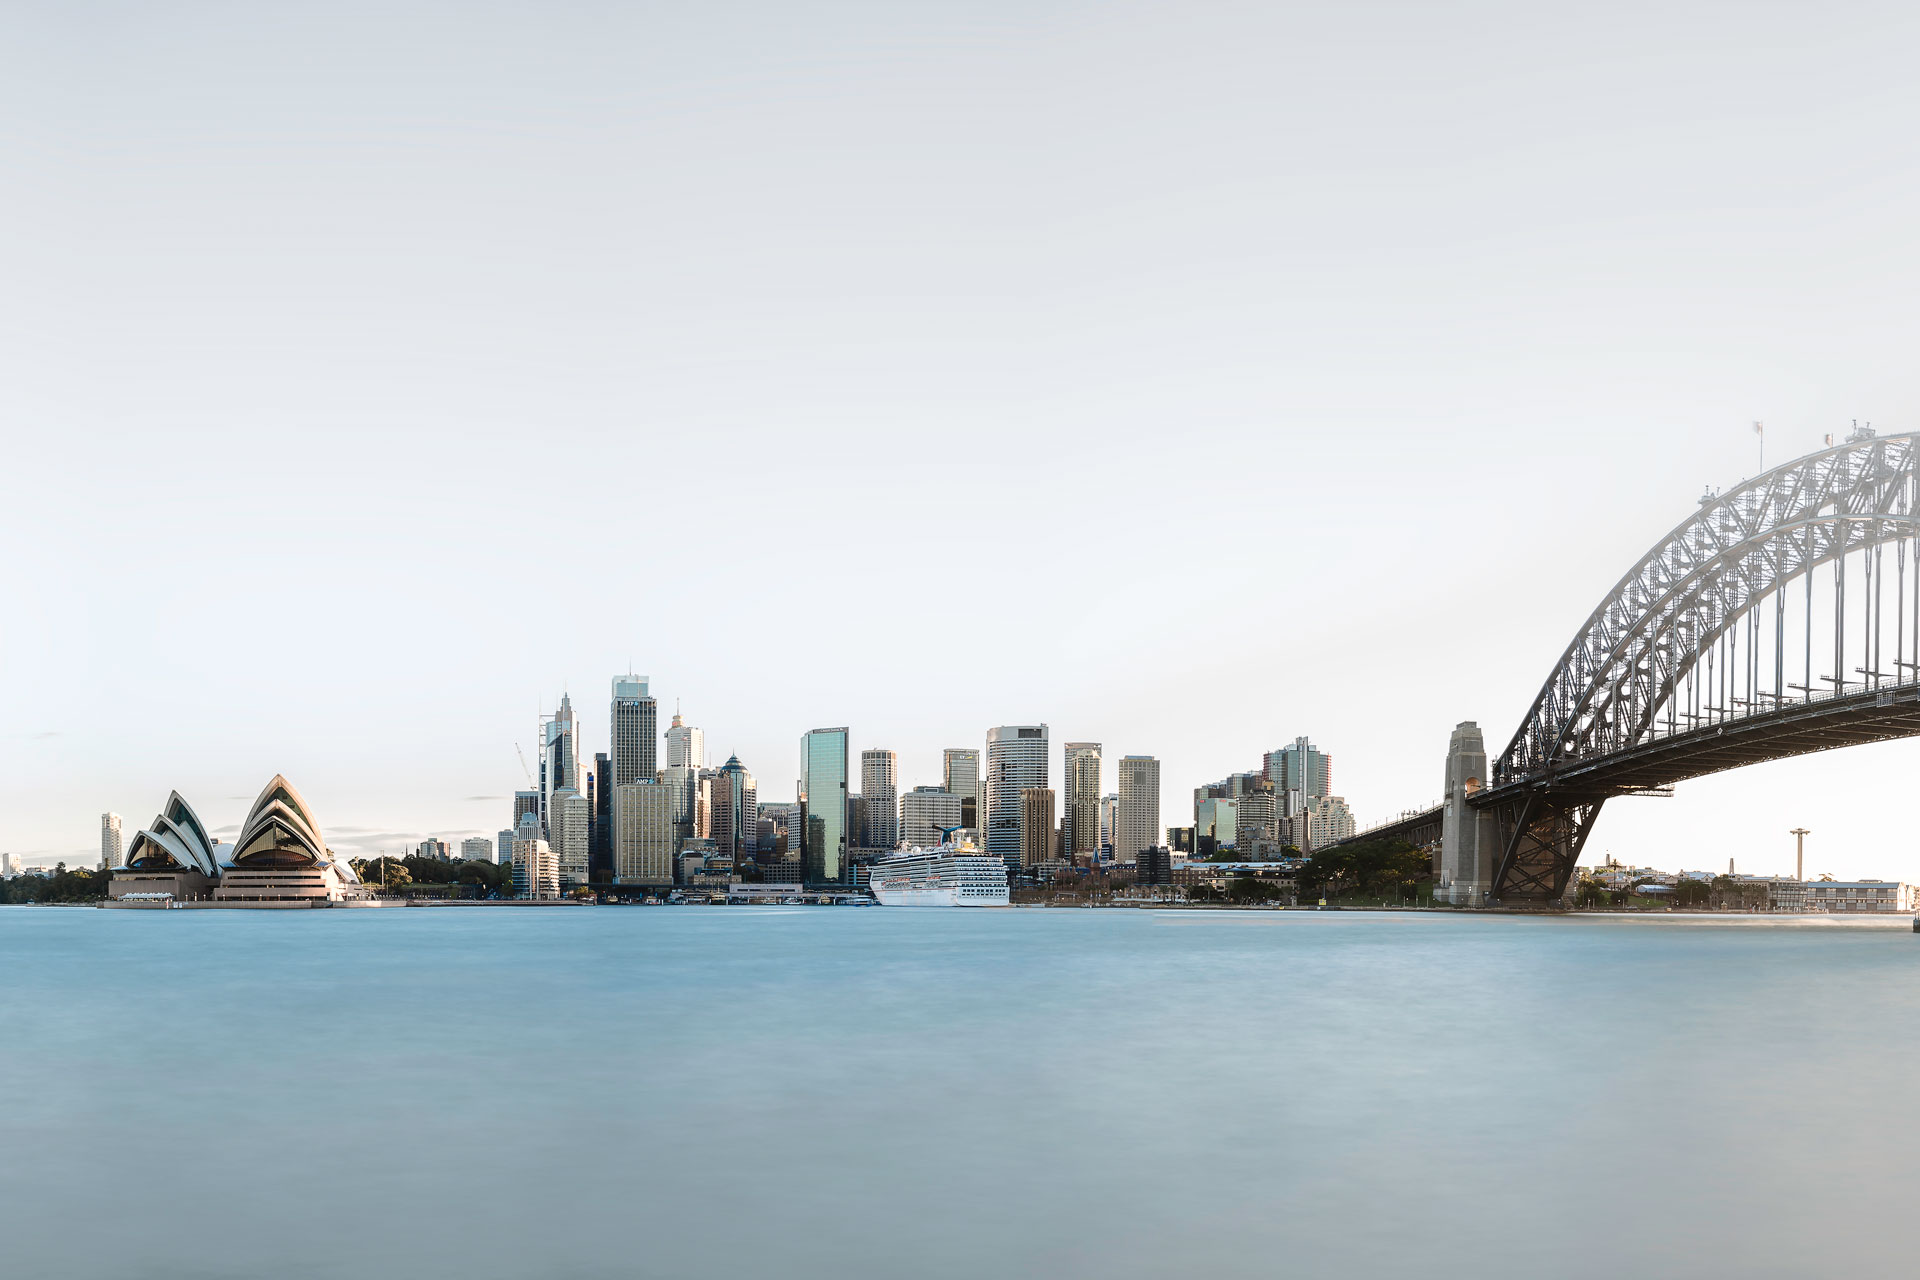 The_Ink_Collective_Creative_Content_Agency_Paris_Editorial_Luxury_Travel_Guide_Review_Sydney_Australia_1.JPG